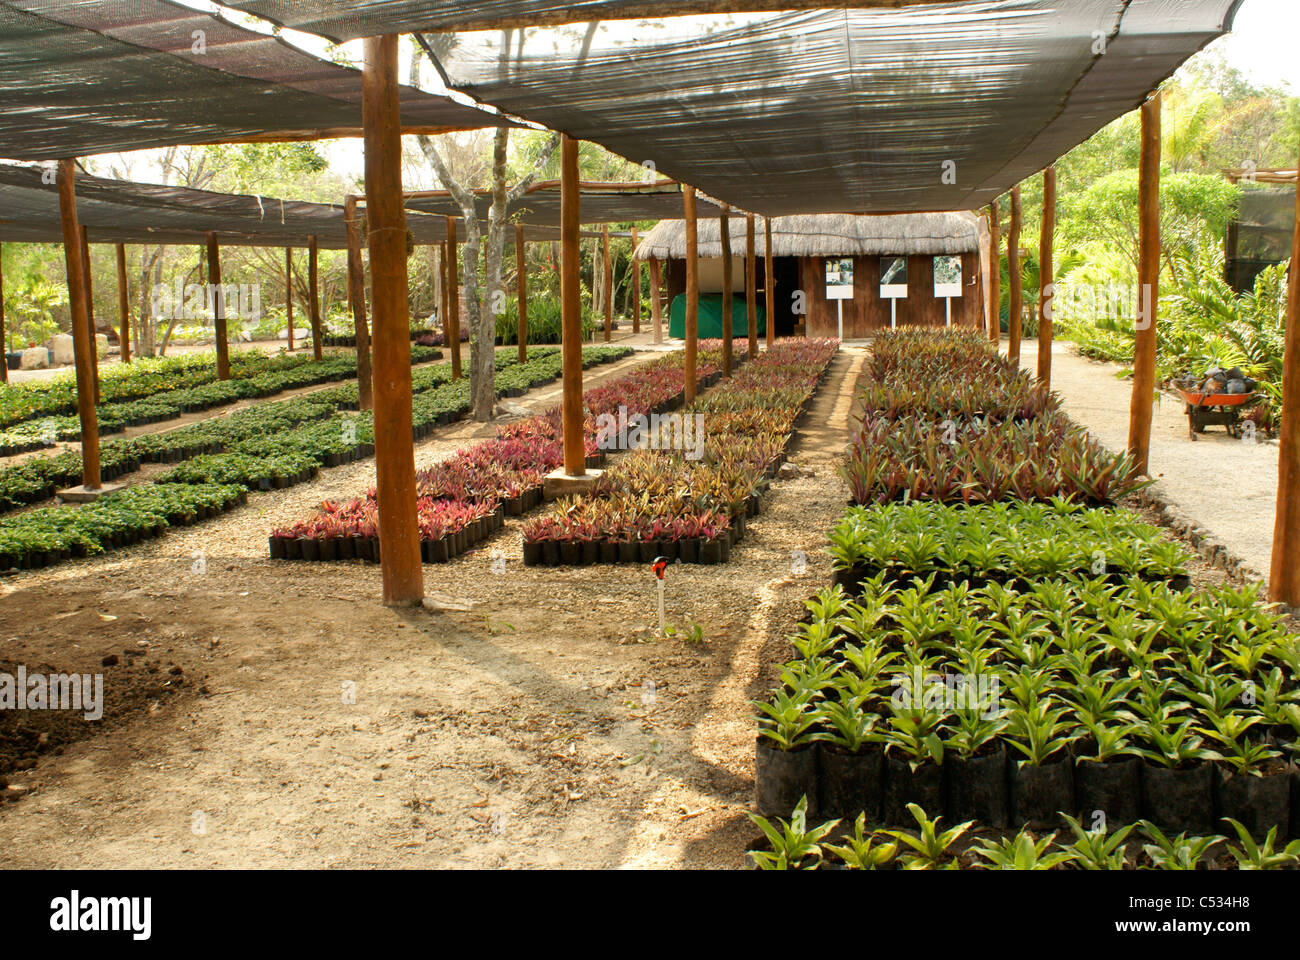 Plant Nursery Stock Photos & Plant Nursery Stock Images - Alamy